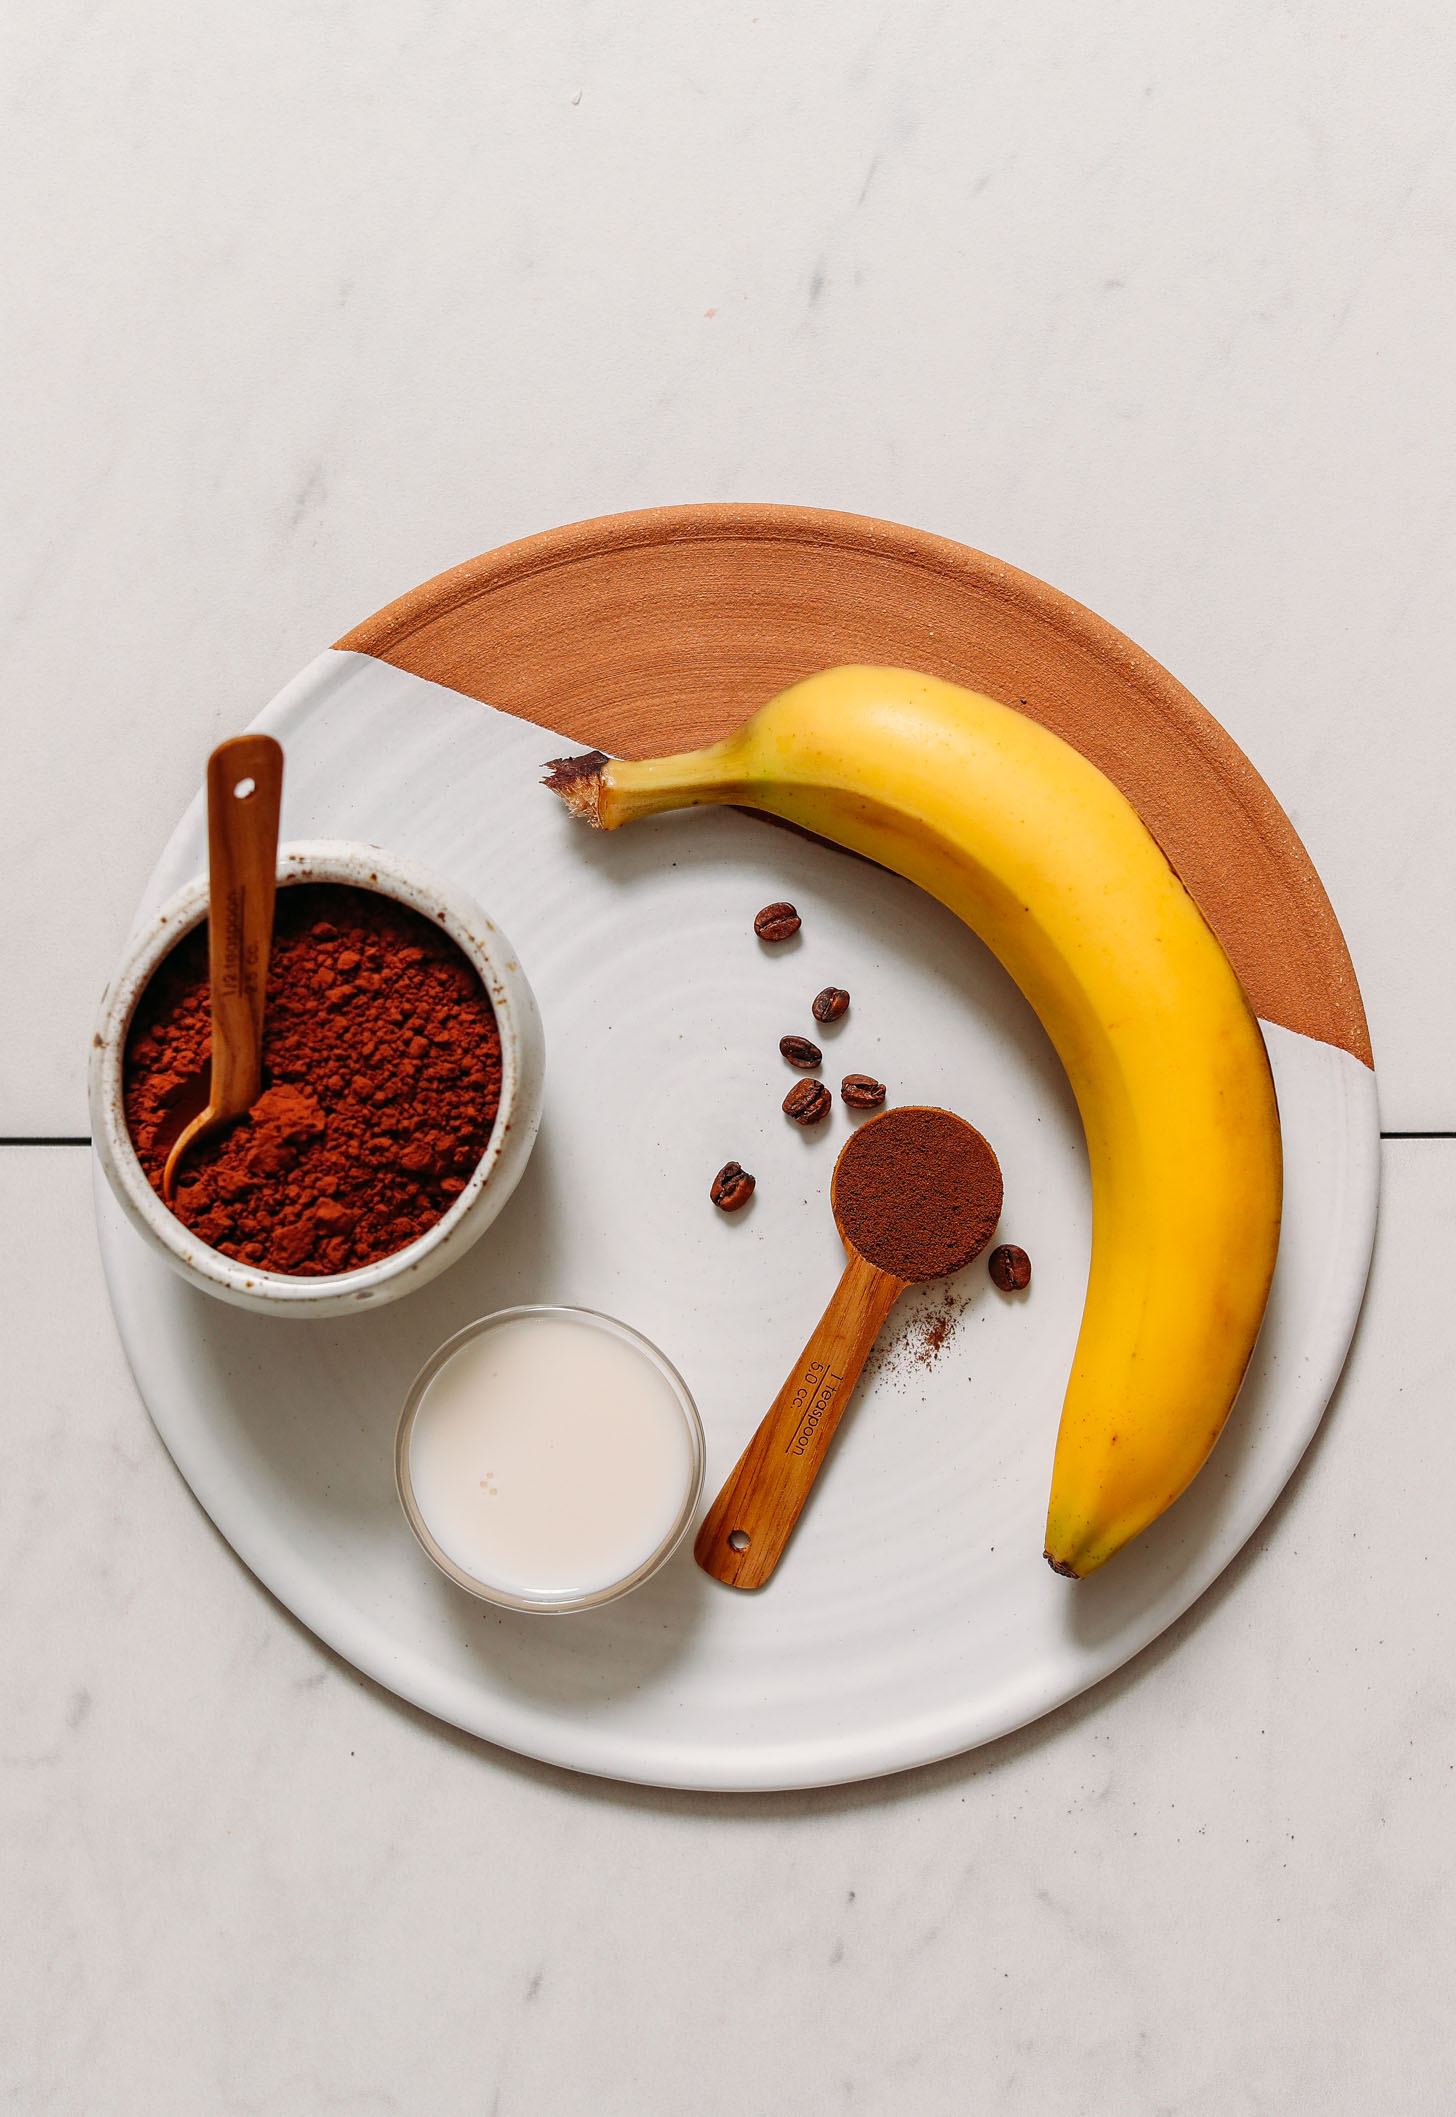 Tray with banana, coffee beans, dandy blend, cacao powder, and dairy-free milk